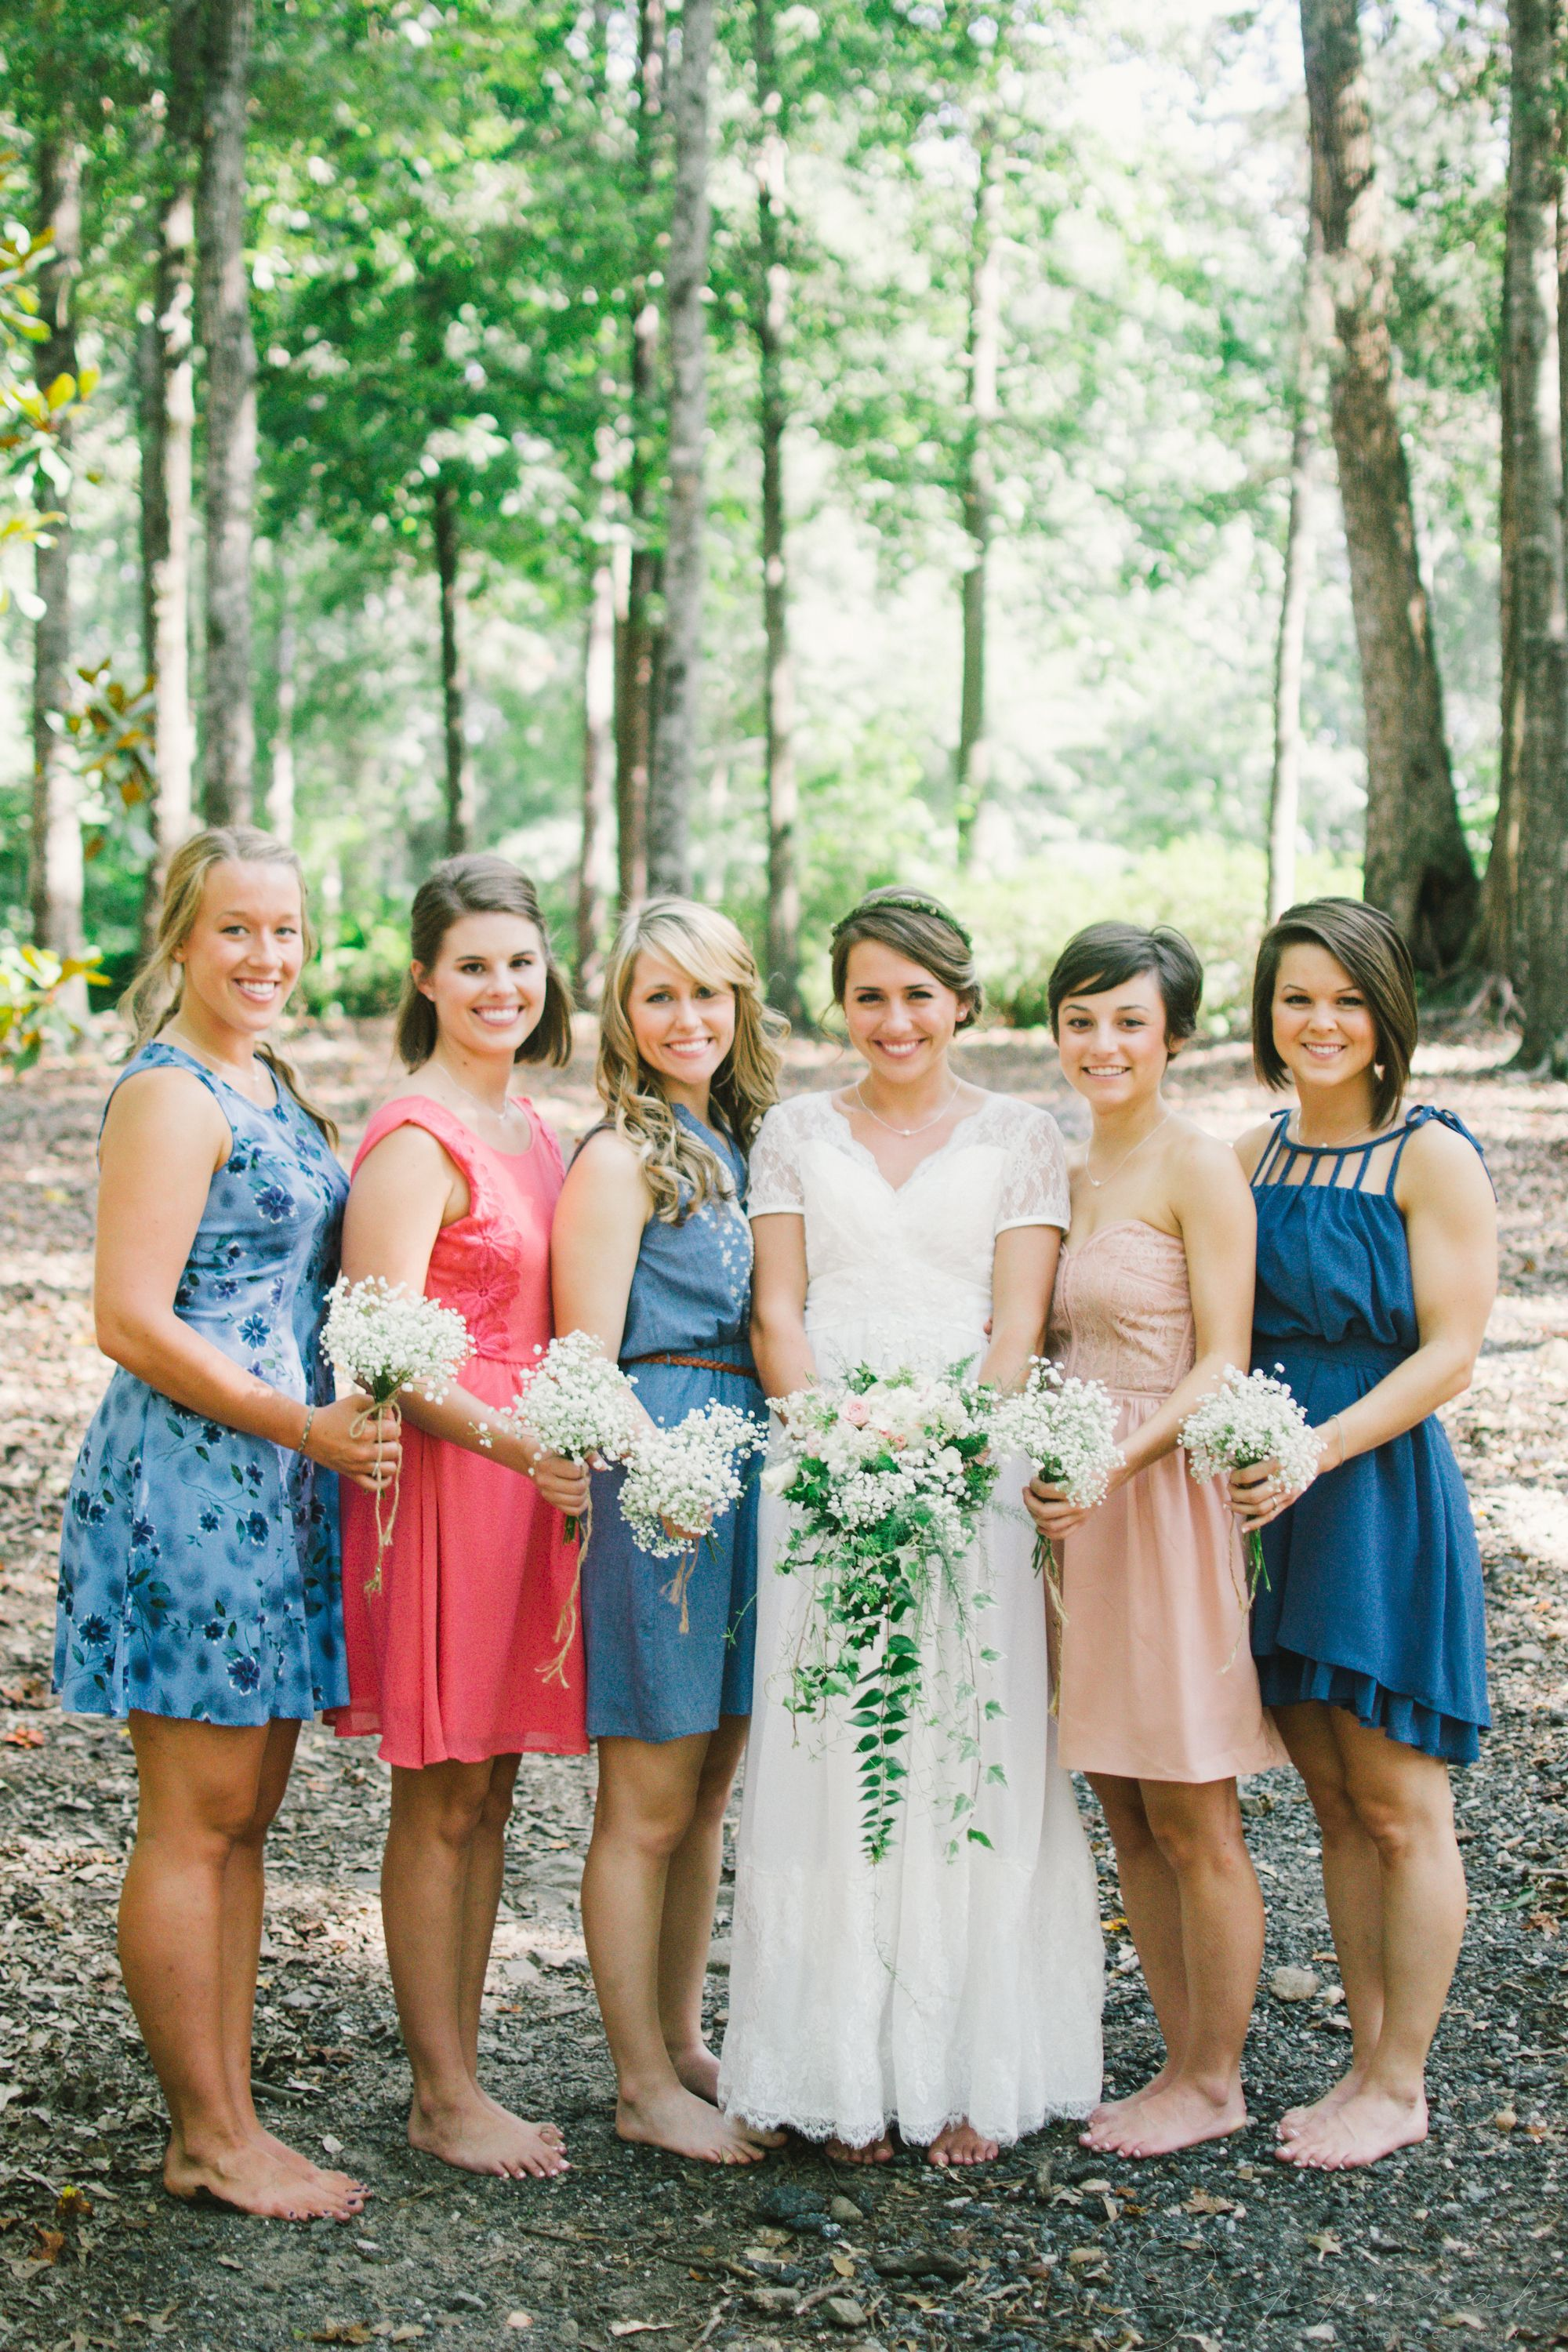 Everweddings romantic vintage rustic bride and bridesmaids everweddings romantic vintage rustic bride and bridesmaids outdoor wedding blue ombrellifo Image collections